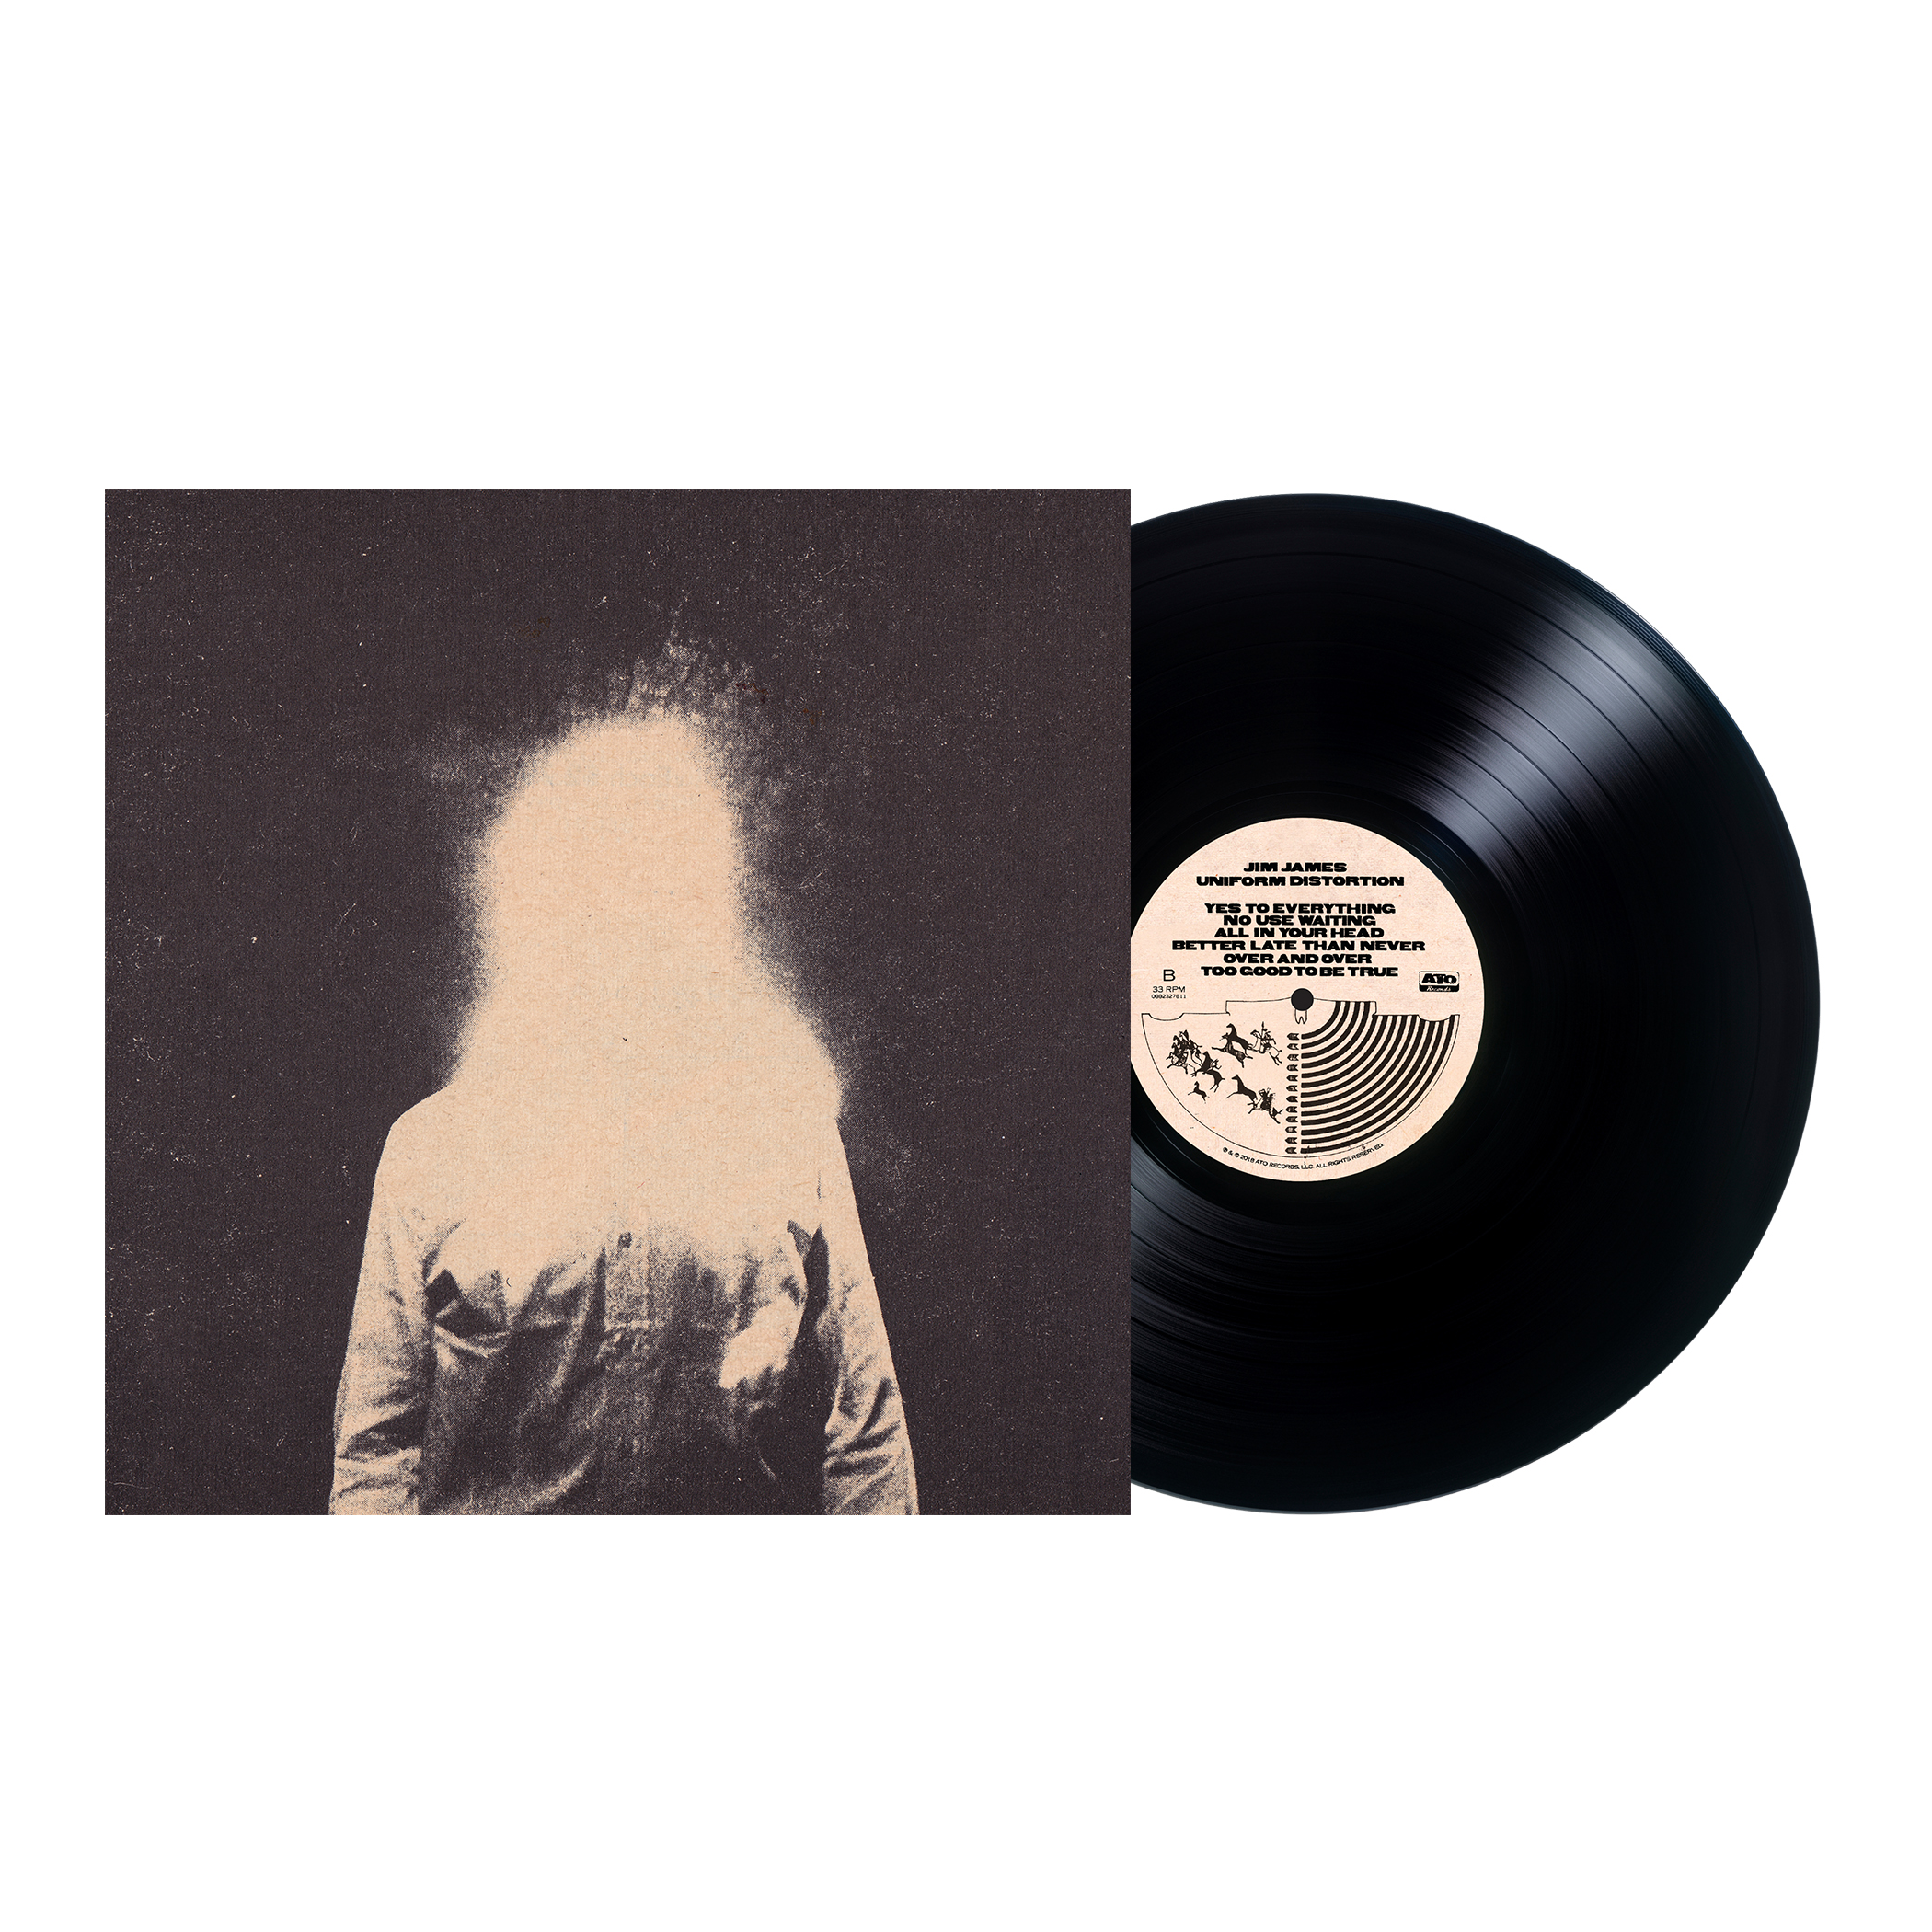 Jim James - Uniform Distortion Black Vinyl